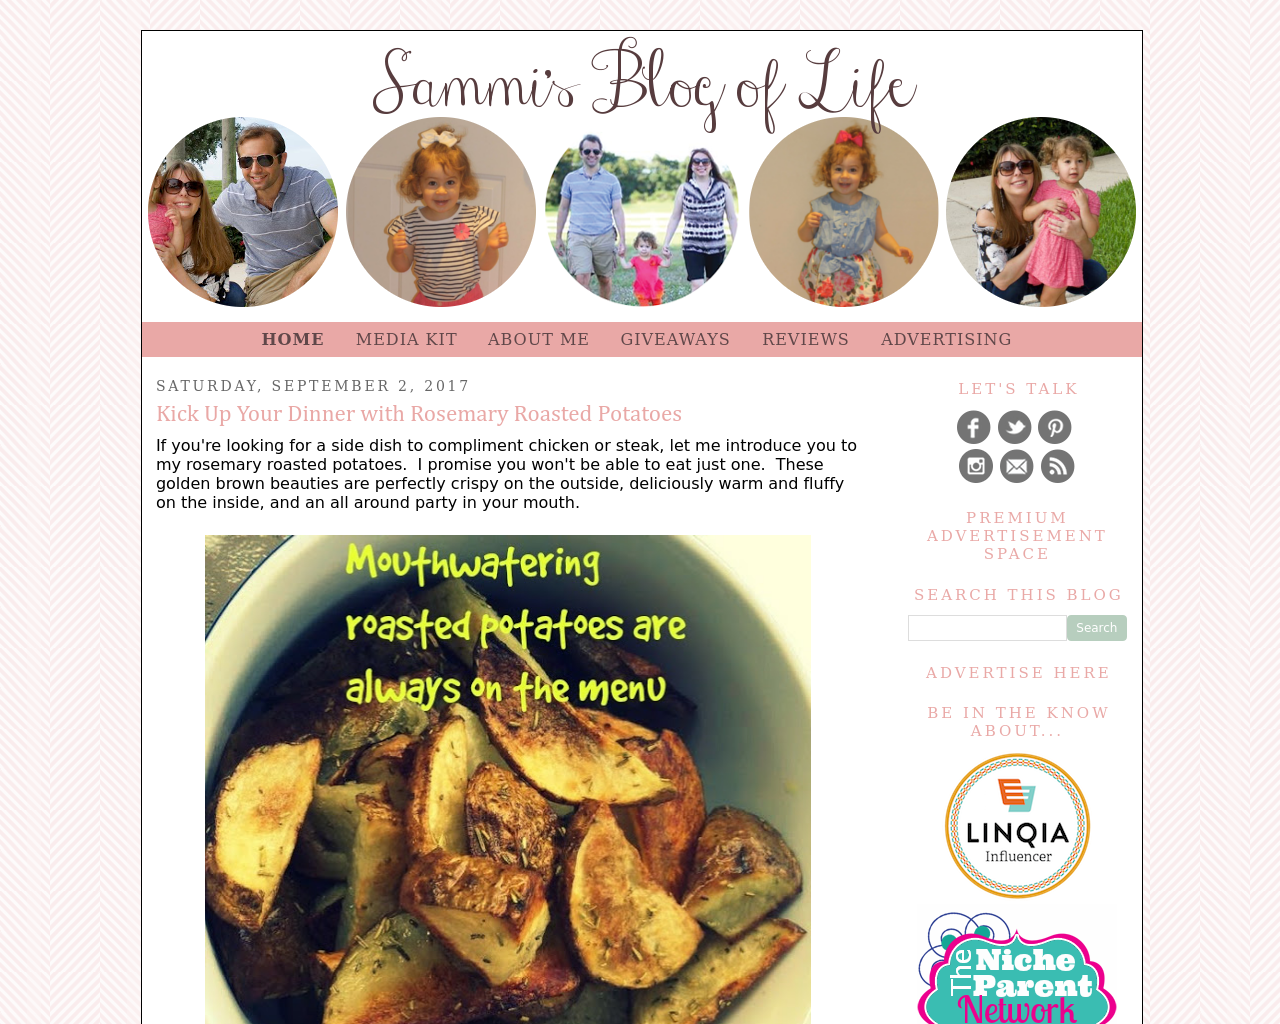 Sammi's-Blog-Of-Life-Advertising-Reviews-Pricing